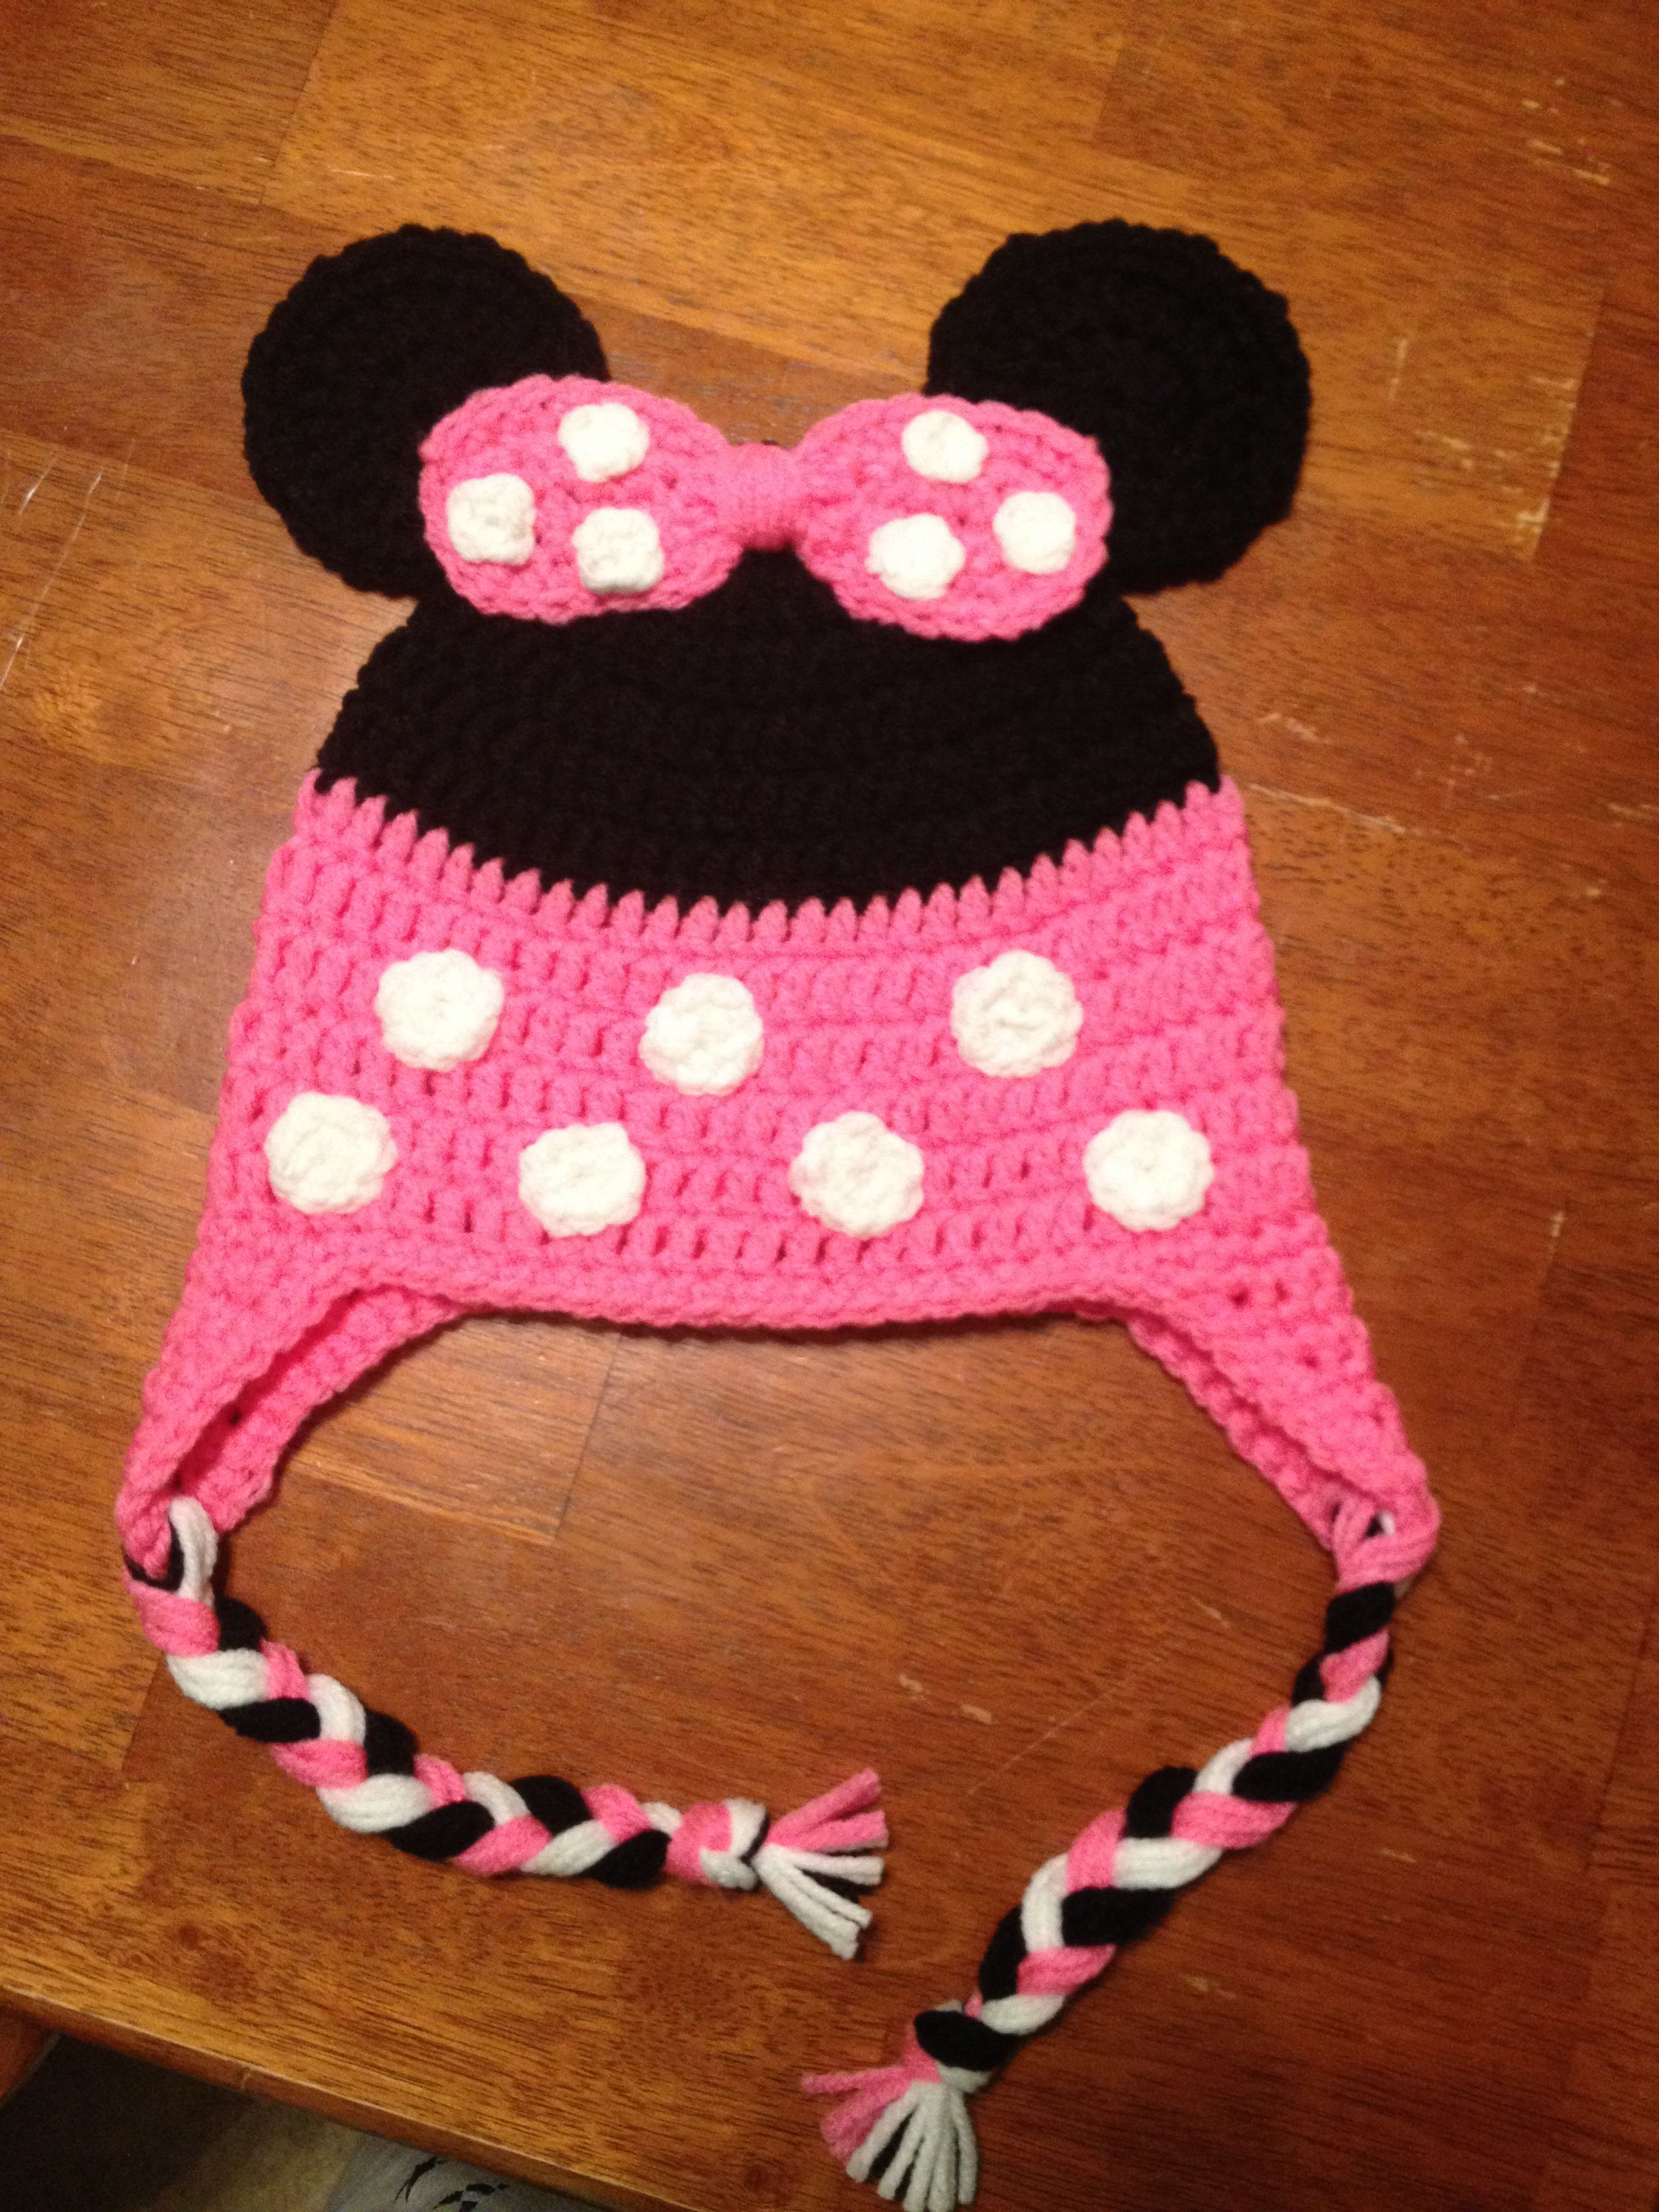 Crochet Minnie Mouse hat | My creations | Pinterest | Minnie mouse ...